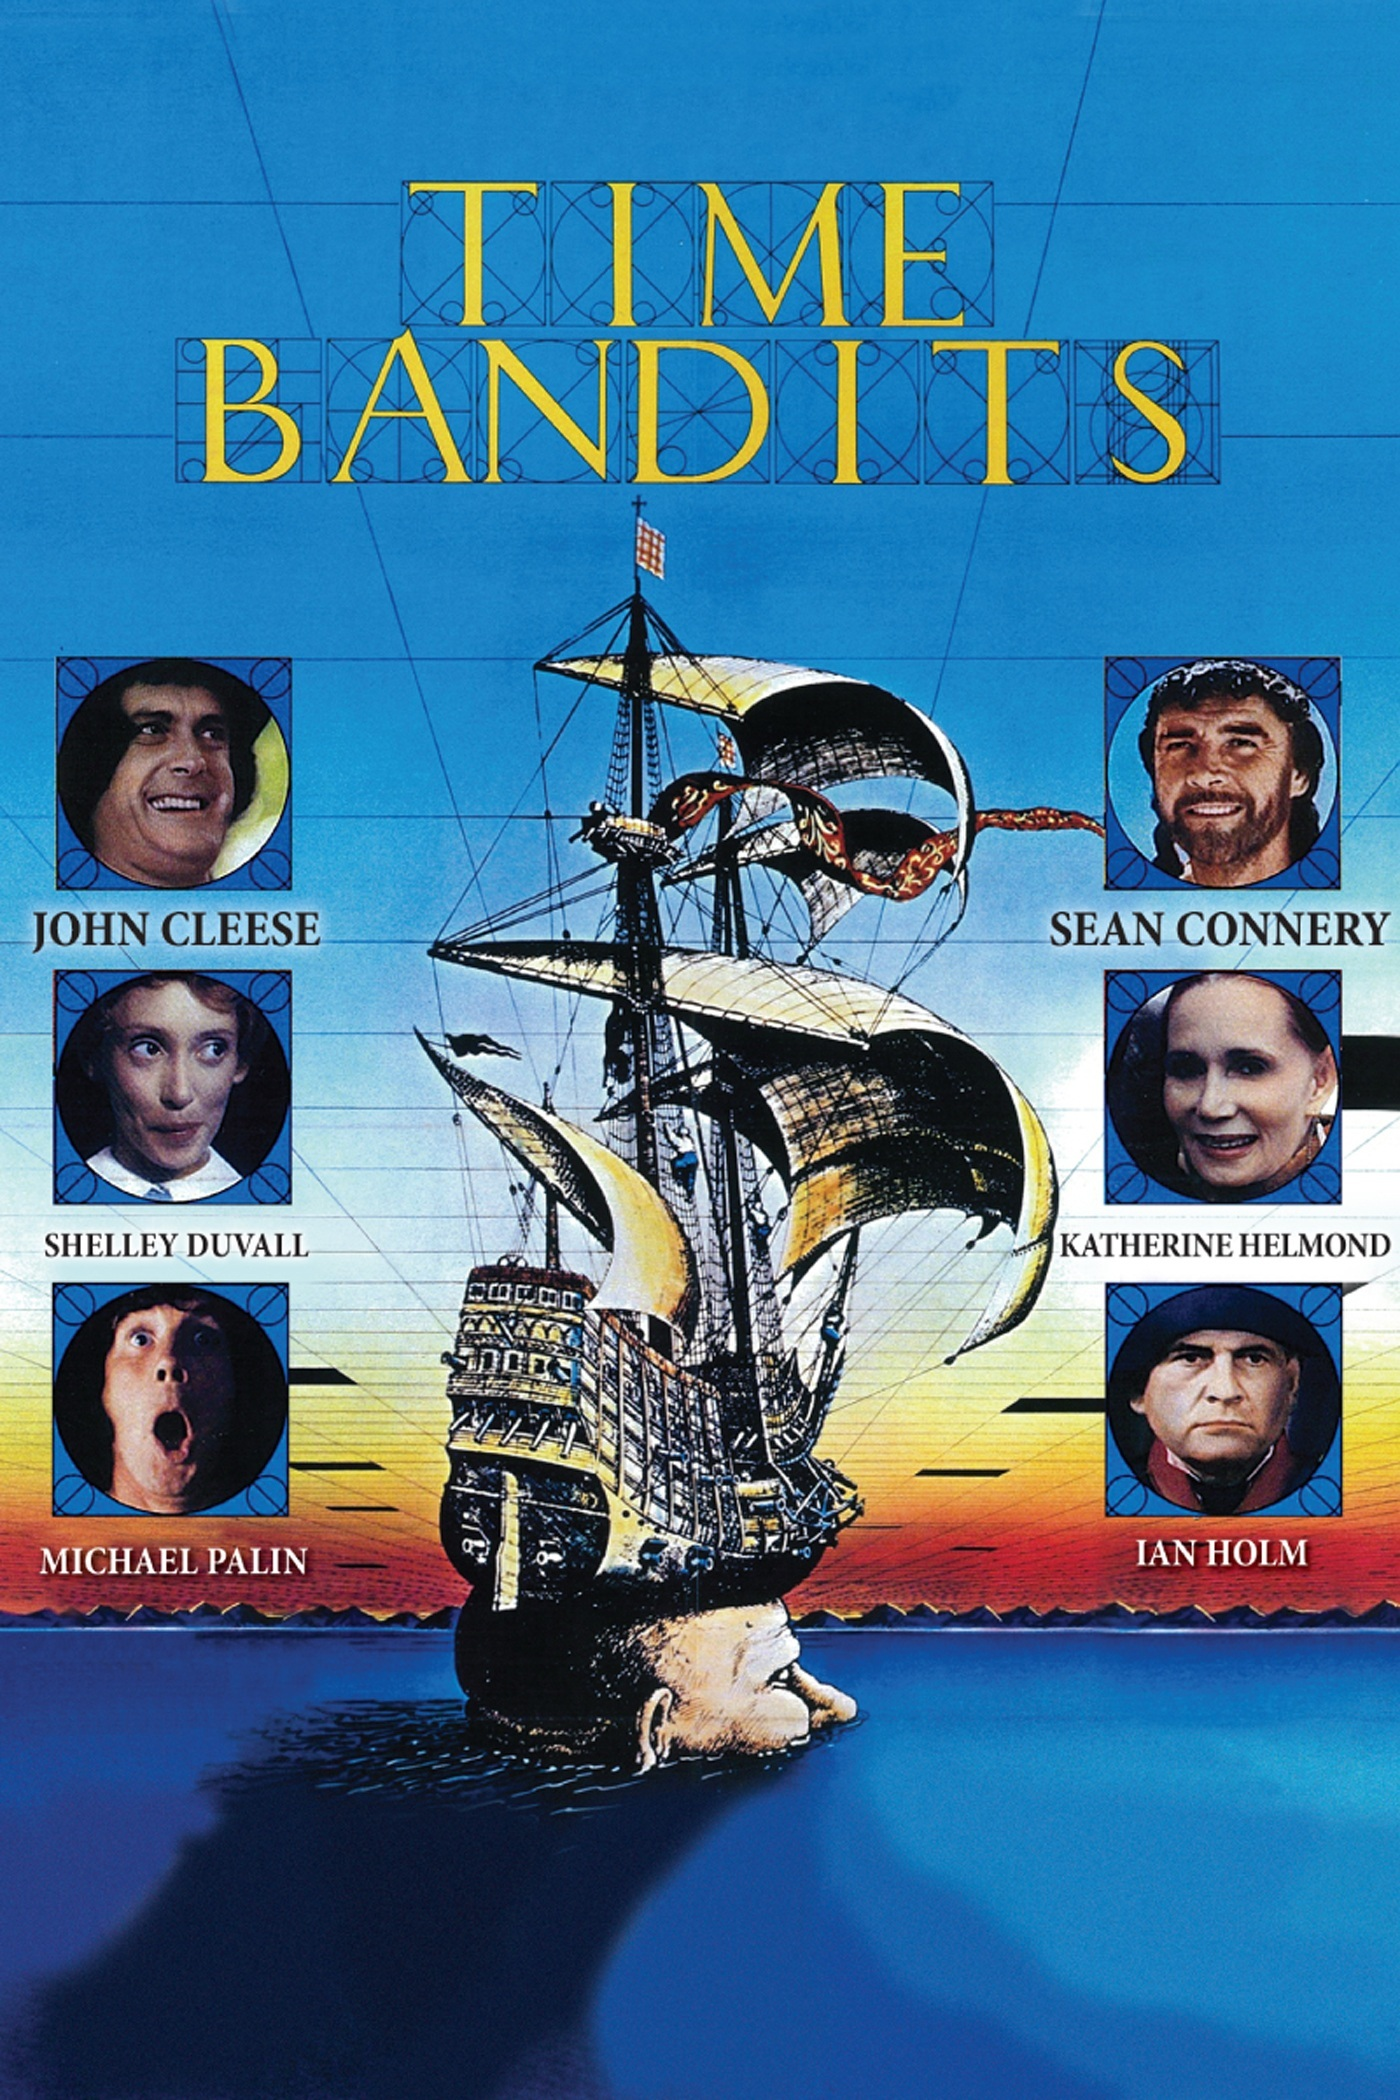 Time Bandits (1981) - Directed By: Terry GilliamStarring: John Cleese, Sean Connery, Shelley Duvall, Ian Holm, Michael Palin, David Warner, David Rappaport, Kenny Baker, Malcom Dixon, Jack Purvis, Craig WarnockRated: PGRun Time: 1h 50mTMM Score: 4 StarsStrengths: Imagination, FunWeakness: Child Acting